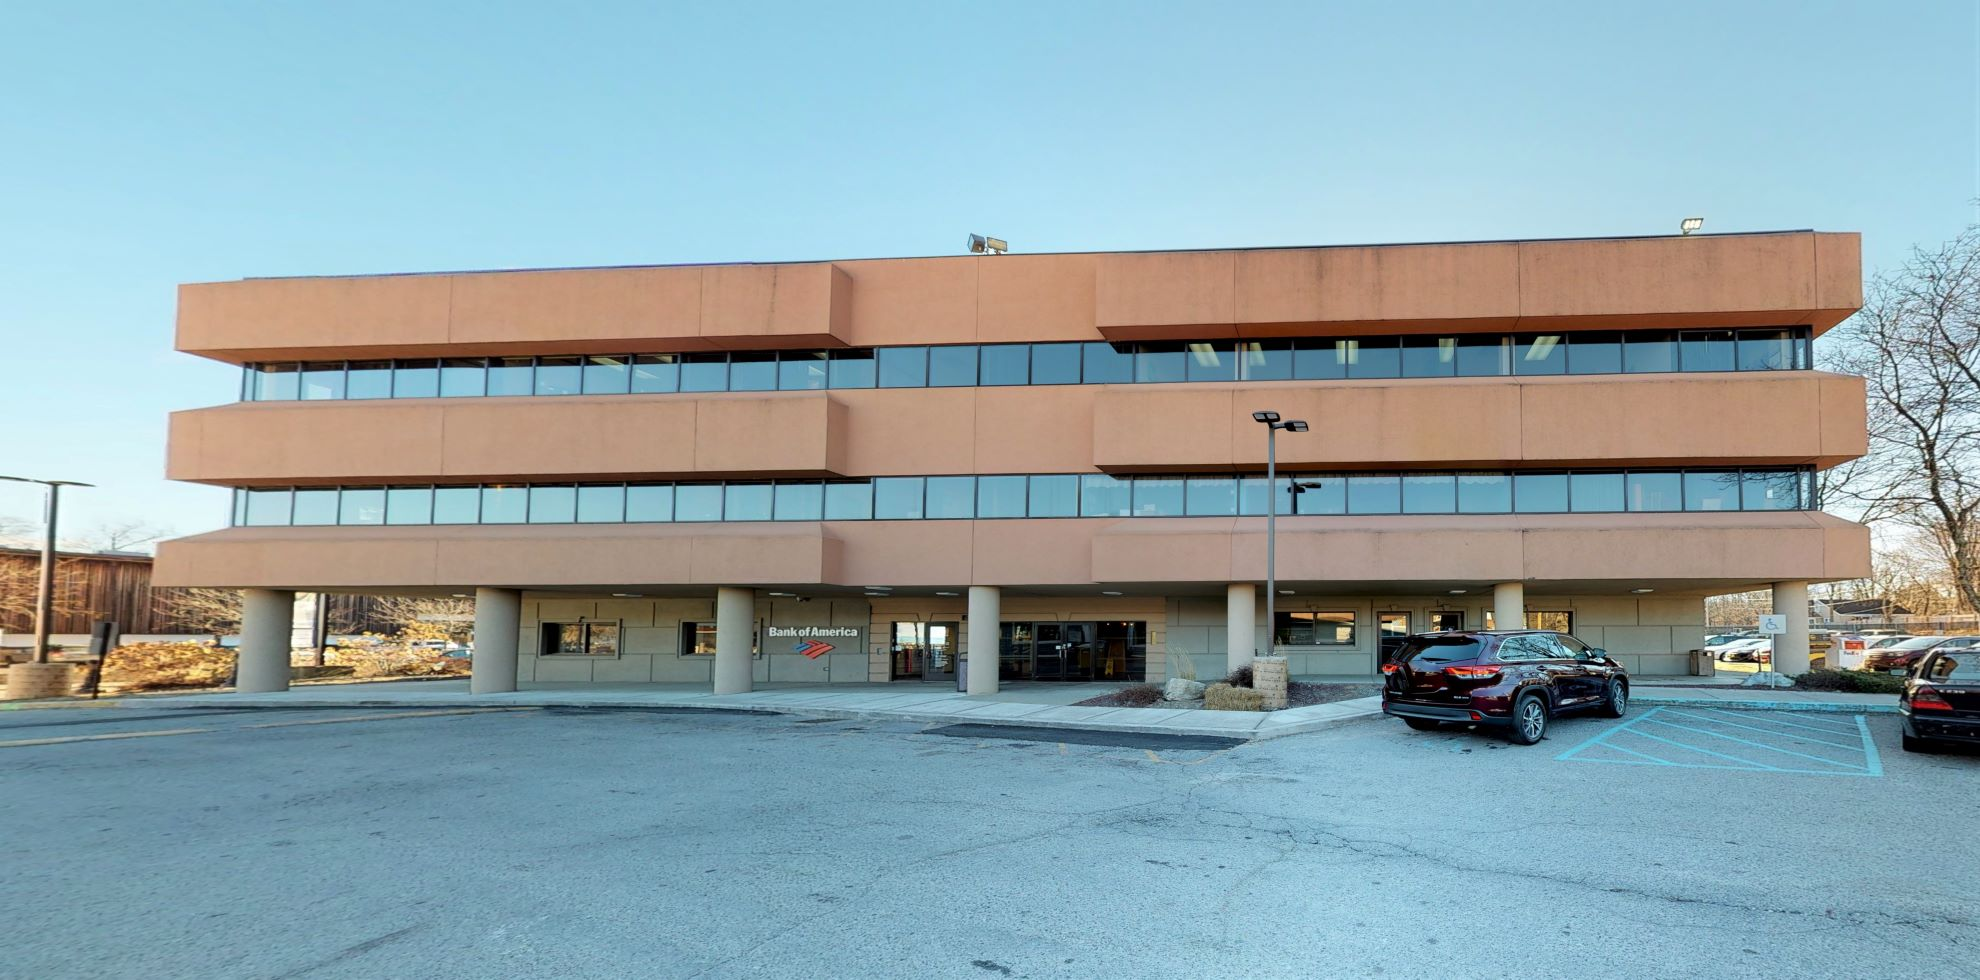 Bank of America financial center with drive-thru ATM | 11 Raymond Ave, Poughkeepsie, NY 12603